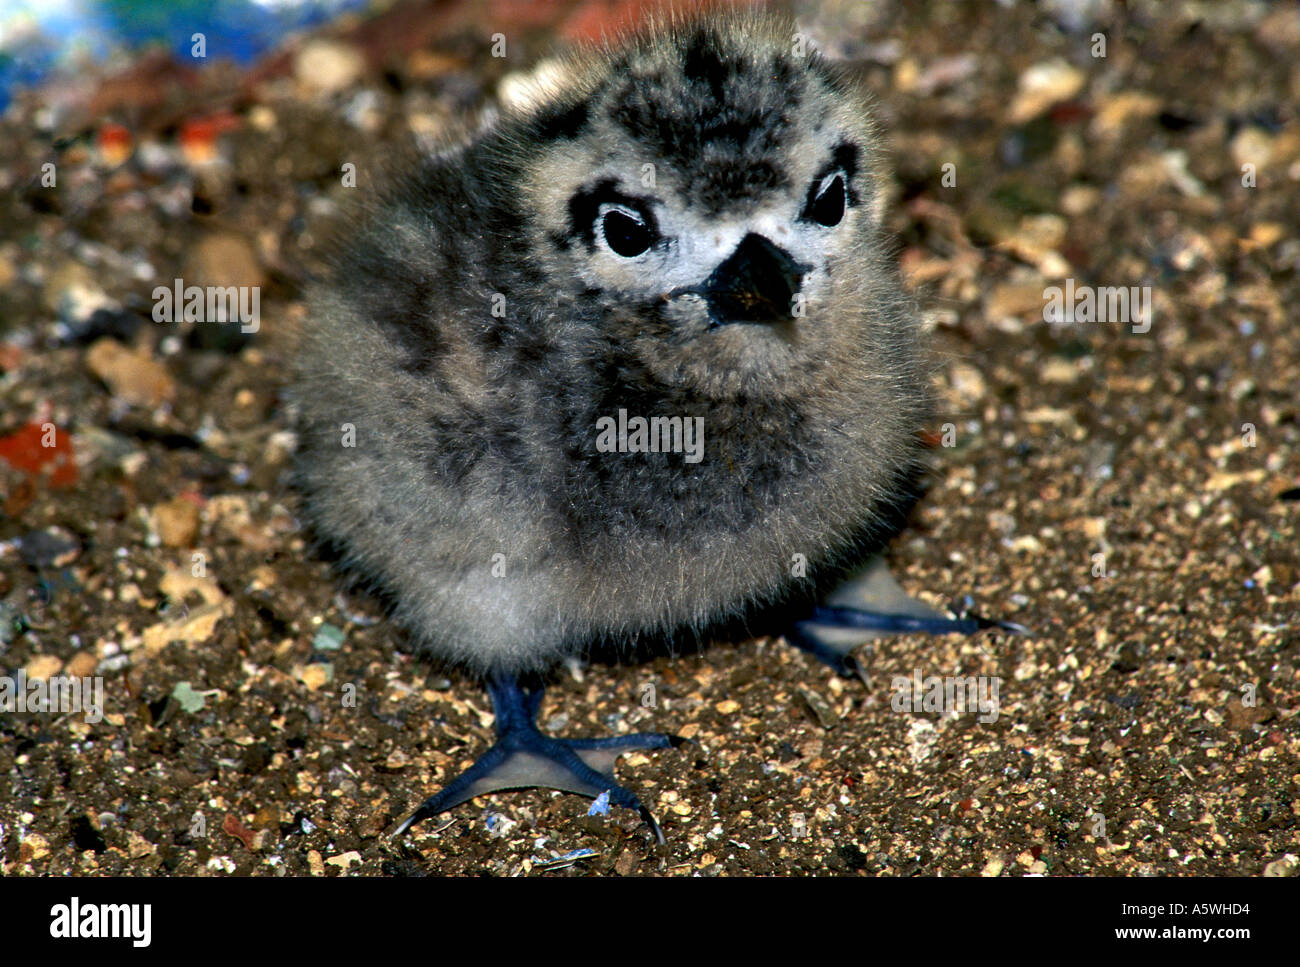 BT2-14A   WHITE TERN CHICK IN NEST AREA - Stock Image